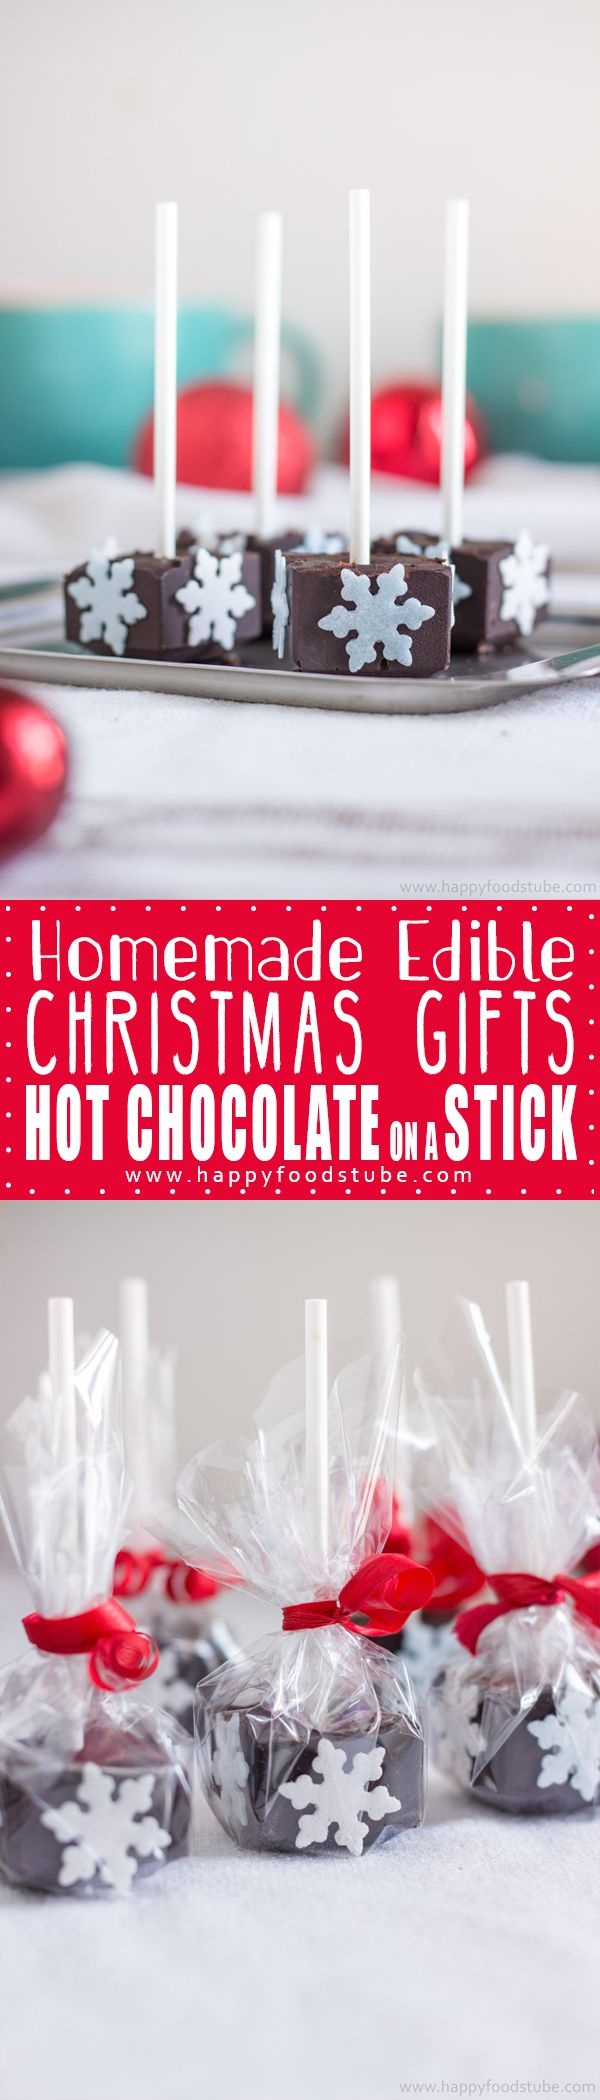 Homemade Hot Chocolate Sticks wrapped in cellophane will make a great edible gift not only for Christmas. Stir it in steamed milk and enjoy!   happyfoodstube.com